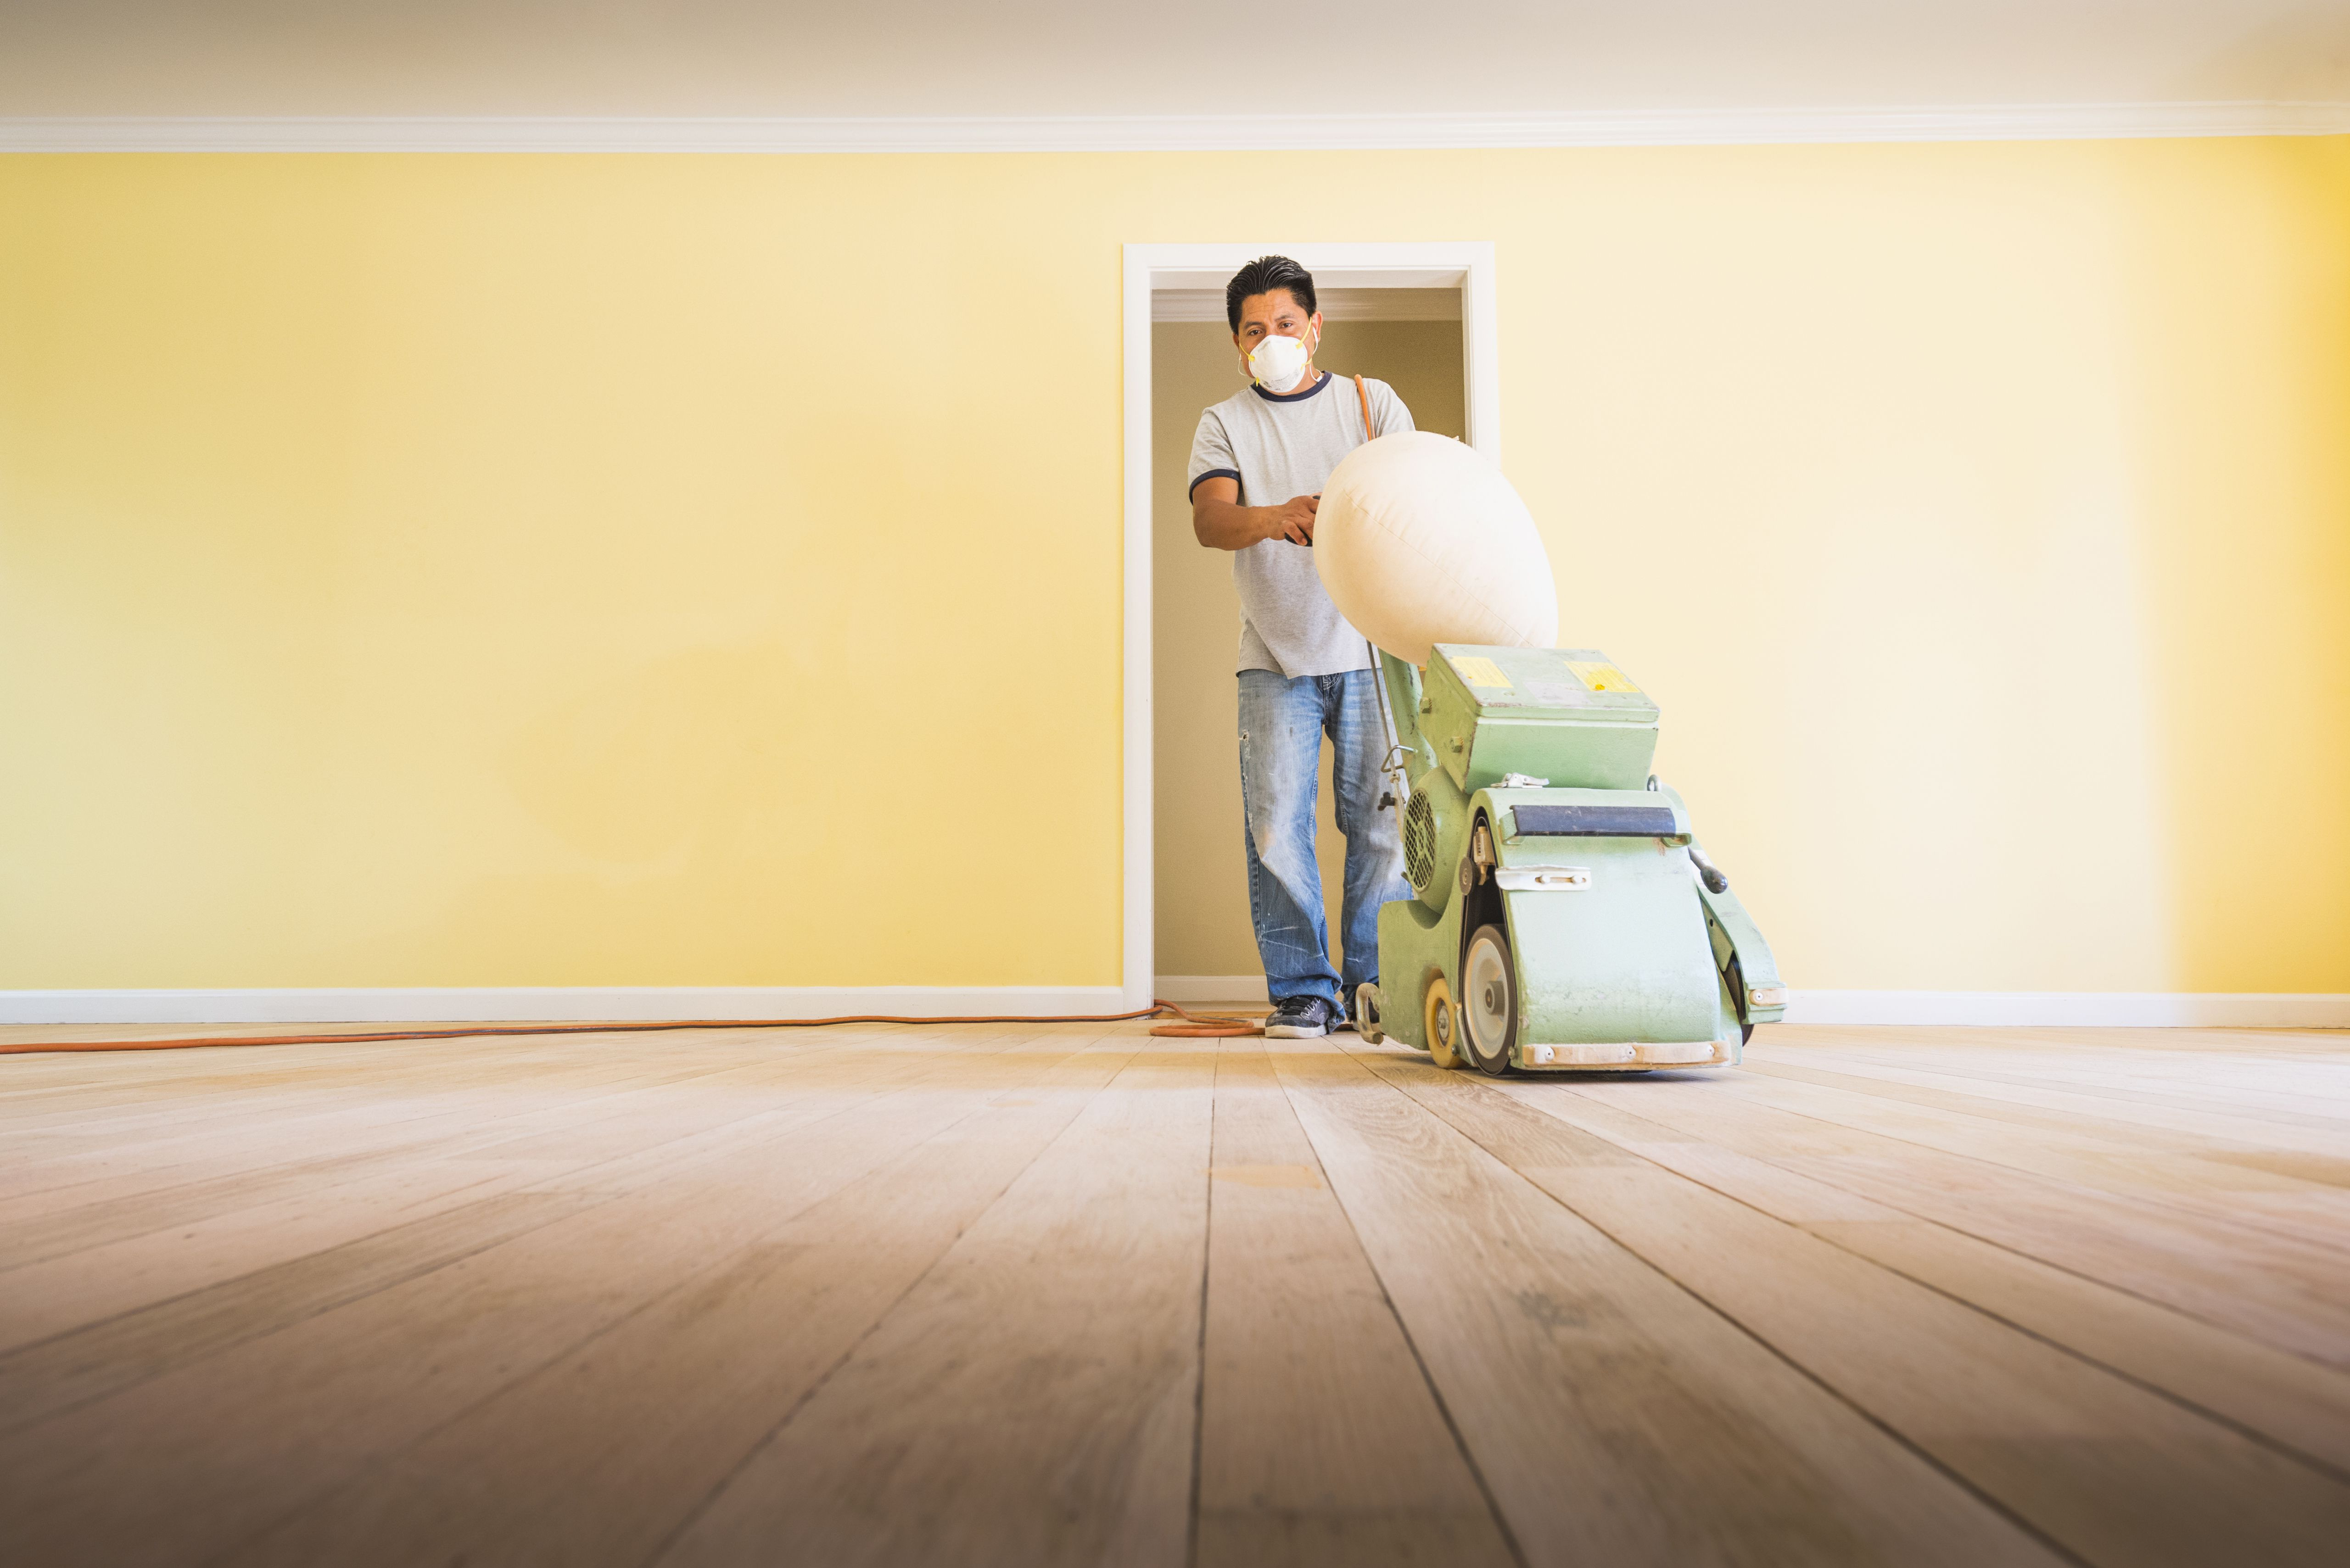 sanding hardwood floors by hand of should you paint walls or refinish floors first within floorsandingafterpainting 5a8f08dfae9ab80037d9d878